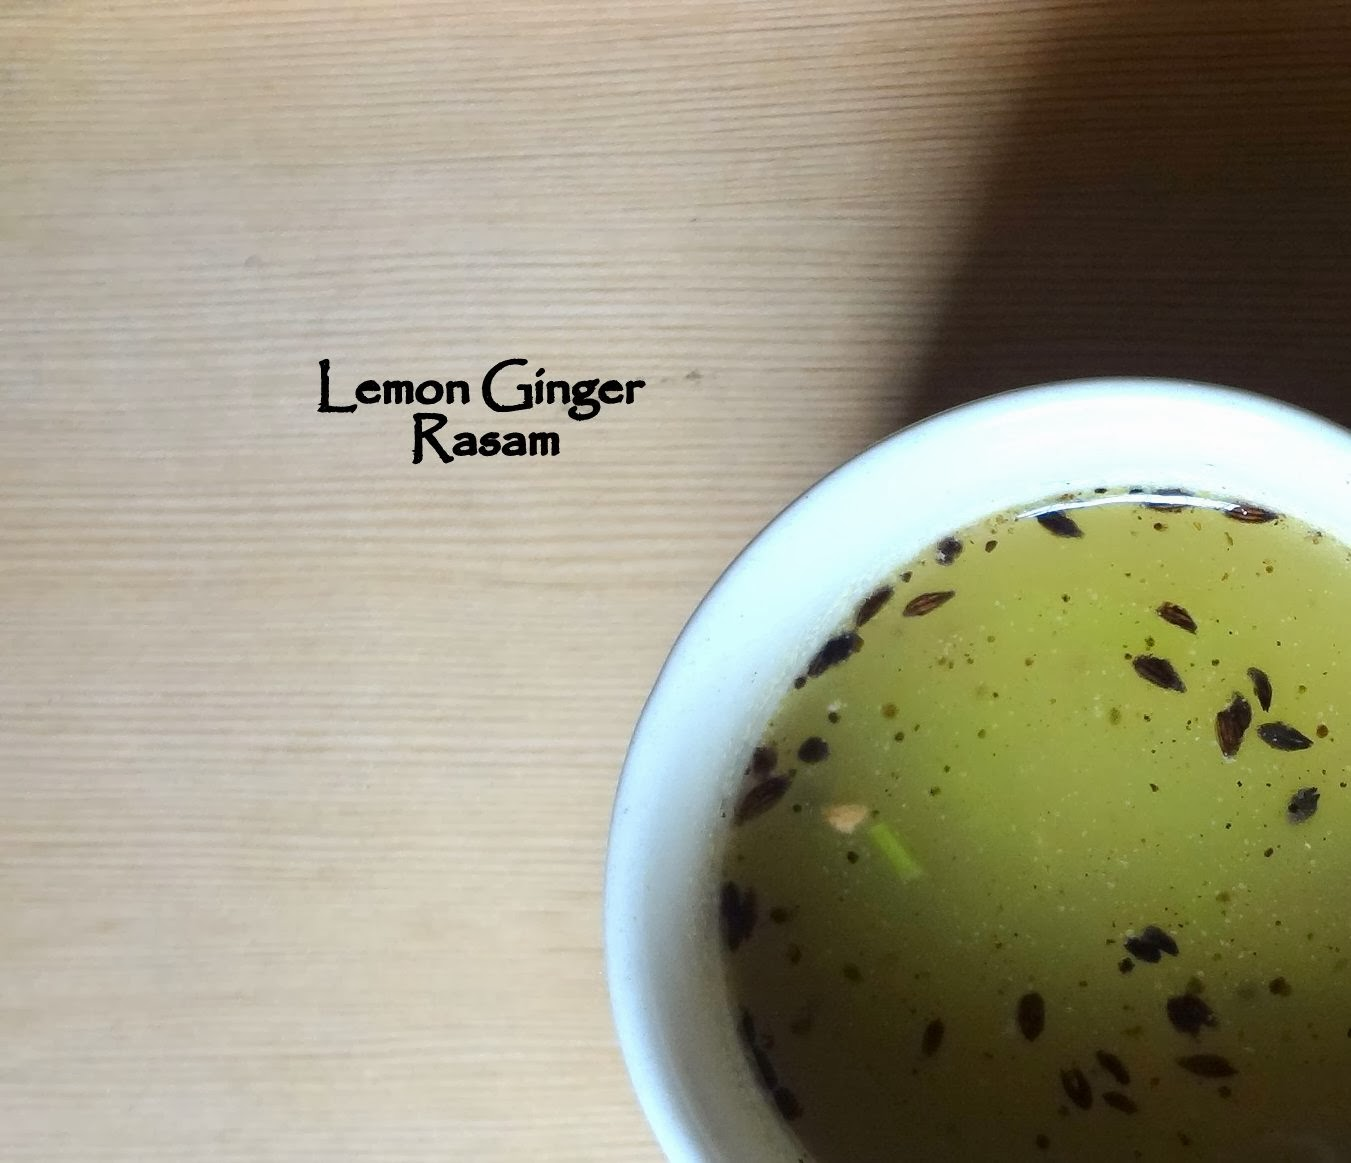 lemon ginger rasam